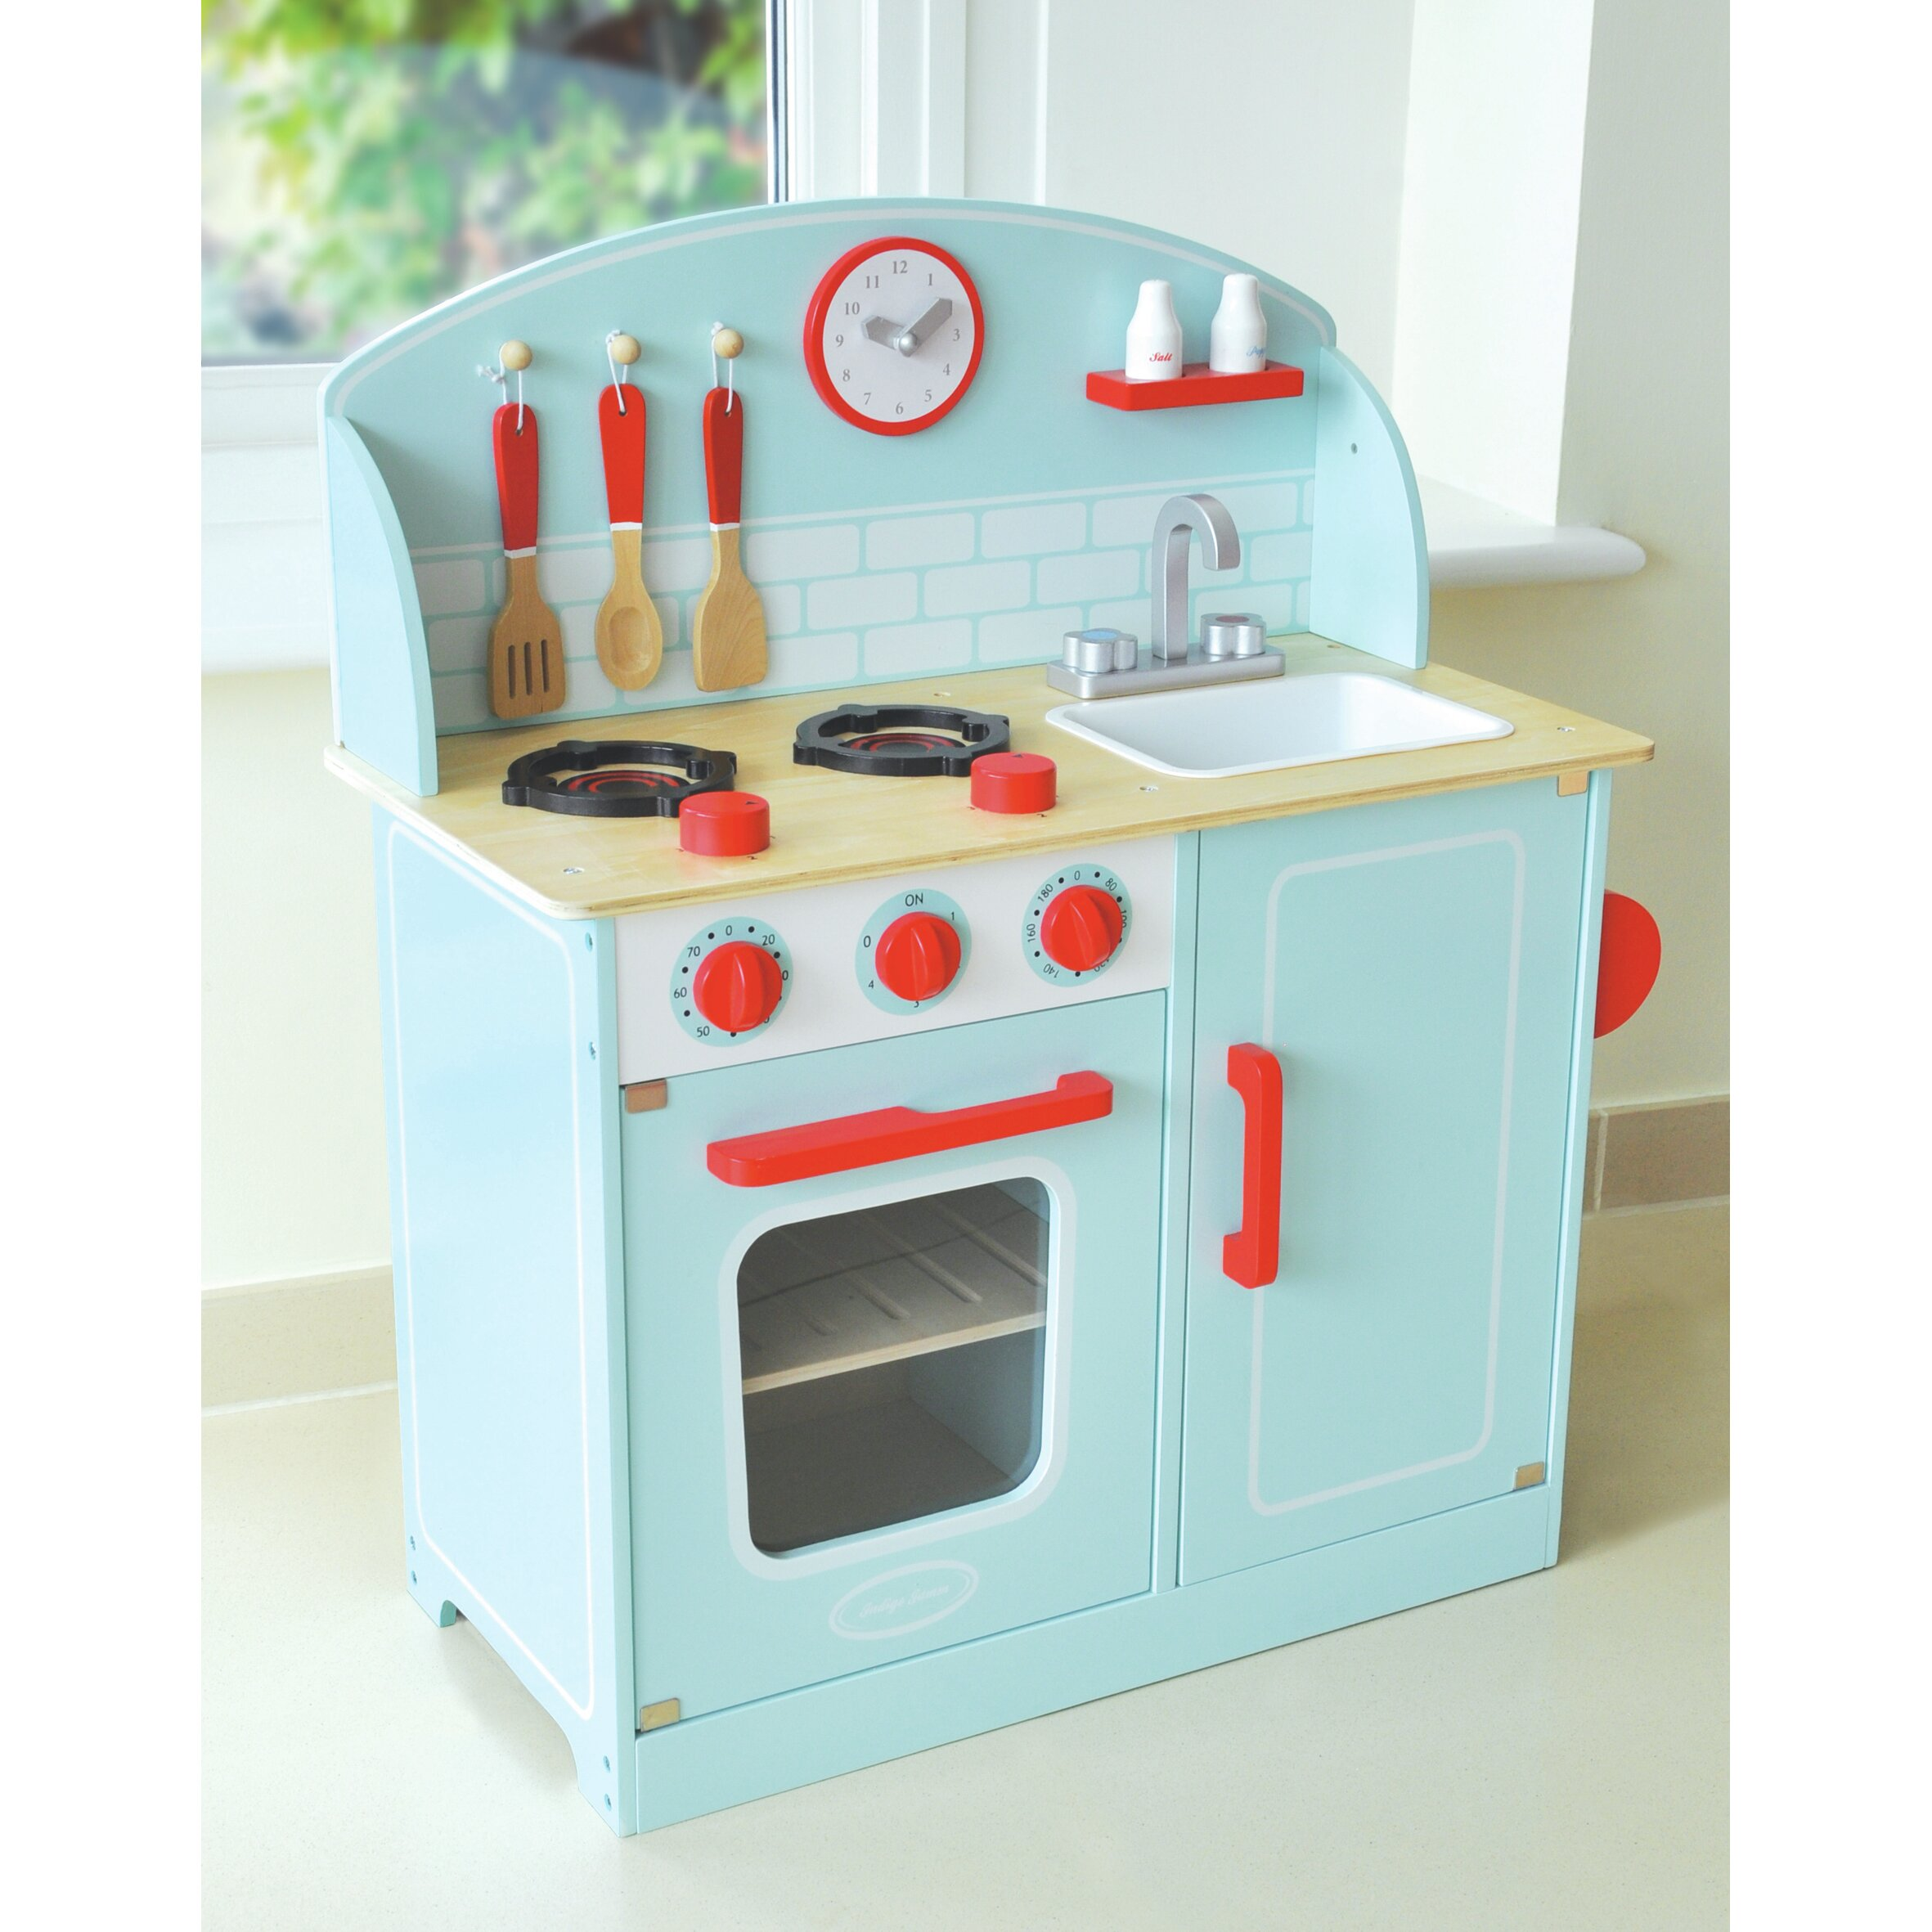 Plastic Play Kitchen plastic play kitchen sets accessories youll love wayfair